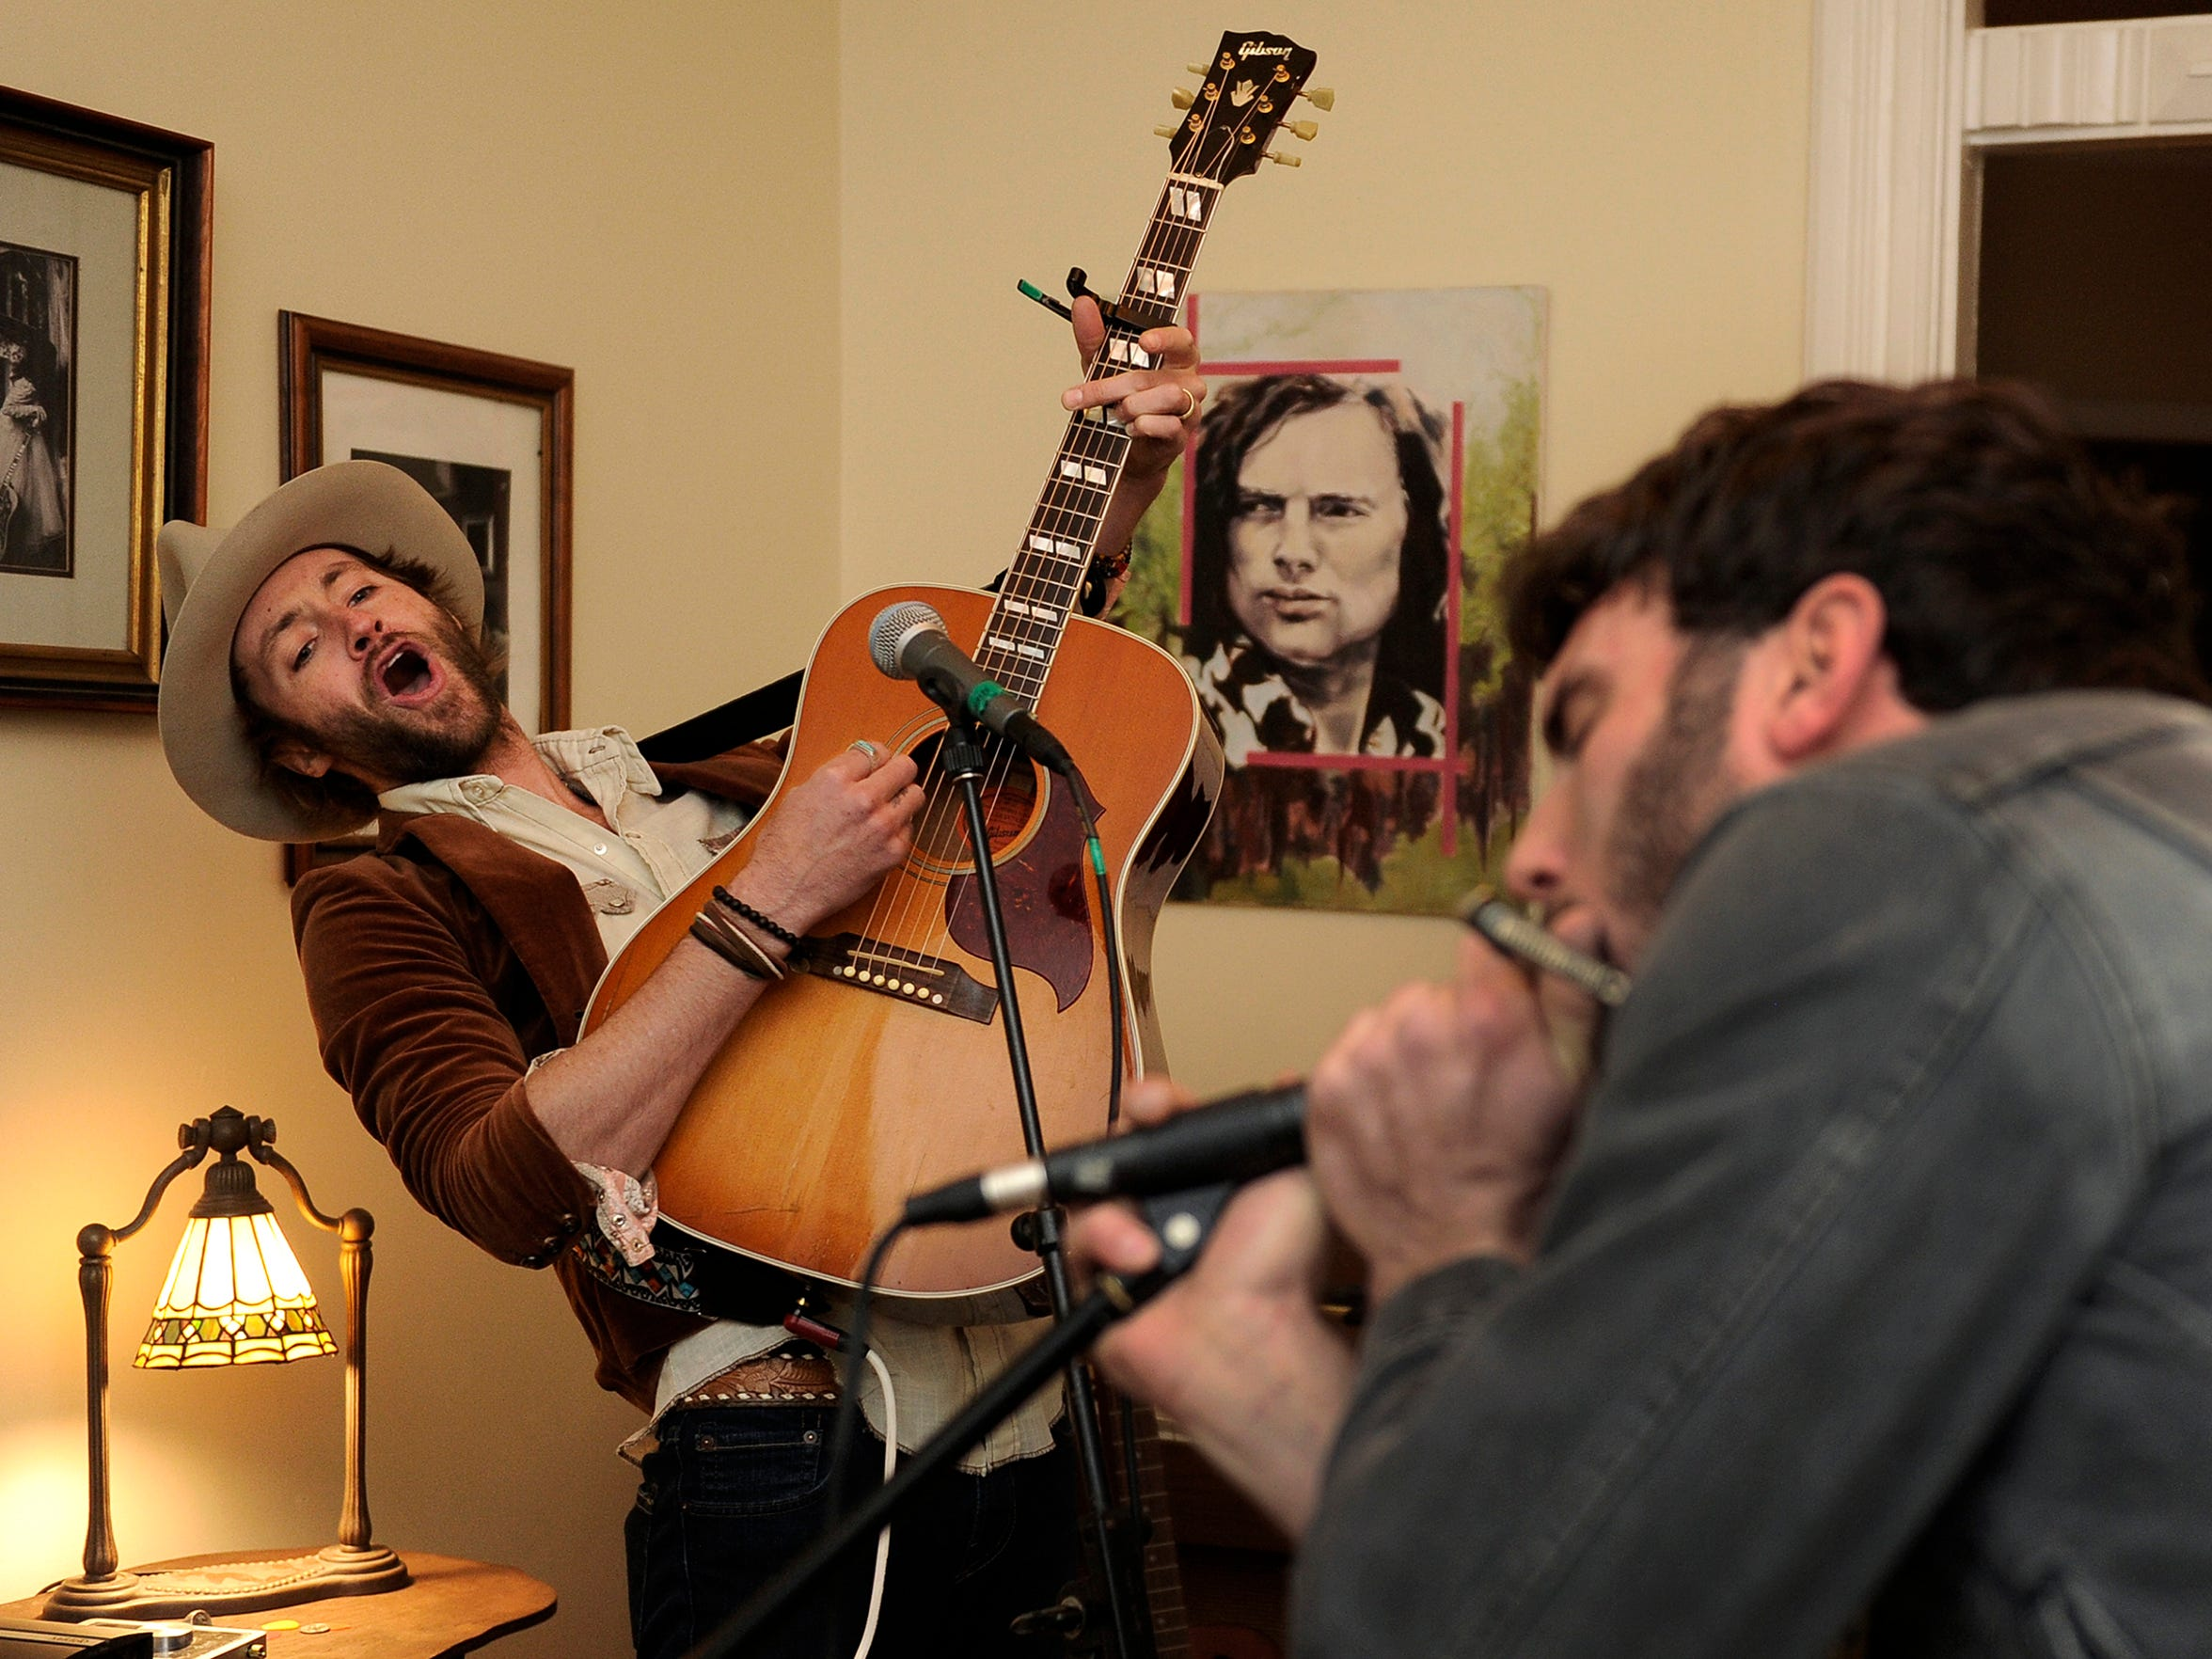 """Former """"American Idol"""" contestant Paul McDonald, left, and bandmate Jonathan Pears rehearsing at the home of Pears in East Nashville in Nashville on Wednesday Jan 8, 2014."""